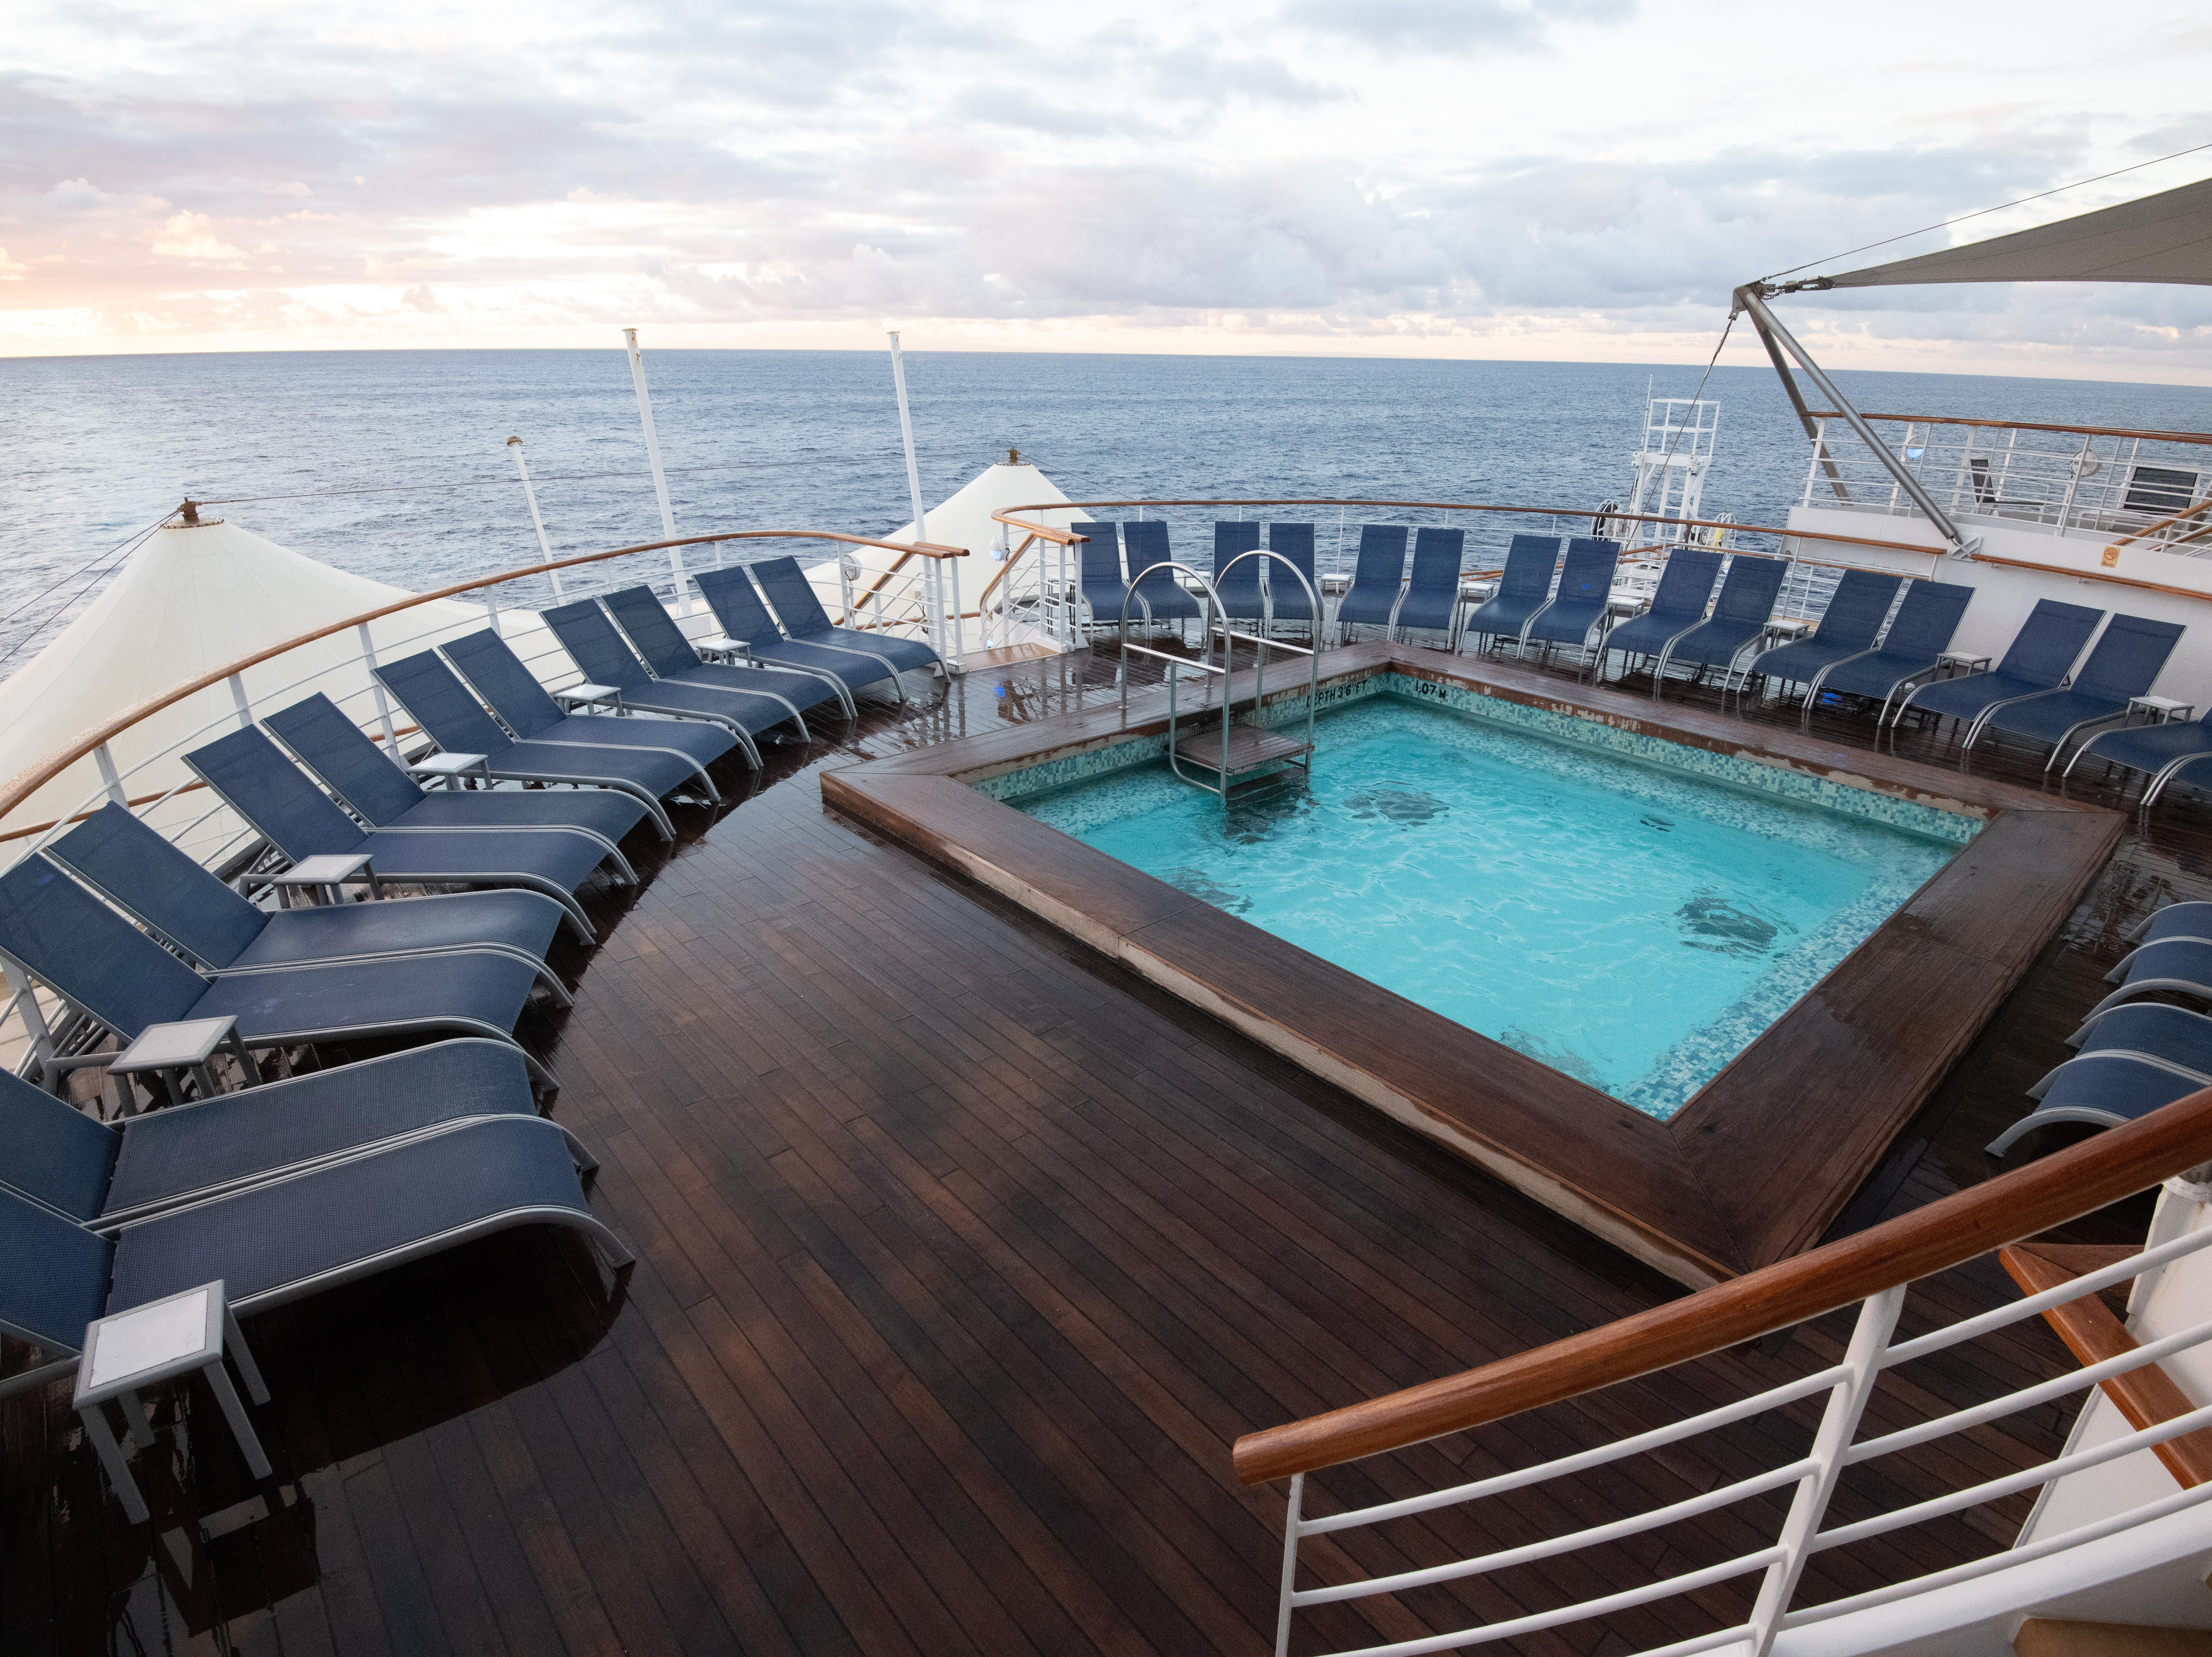 A second pool area is located at the back of the ship on Deck 12. Called the Oasis Pool, it is ringed with lounge chairs.